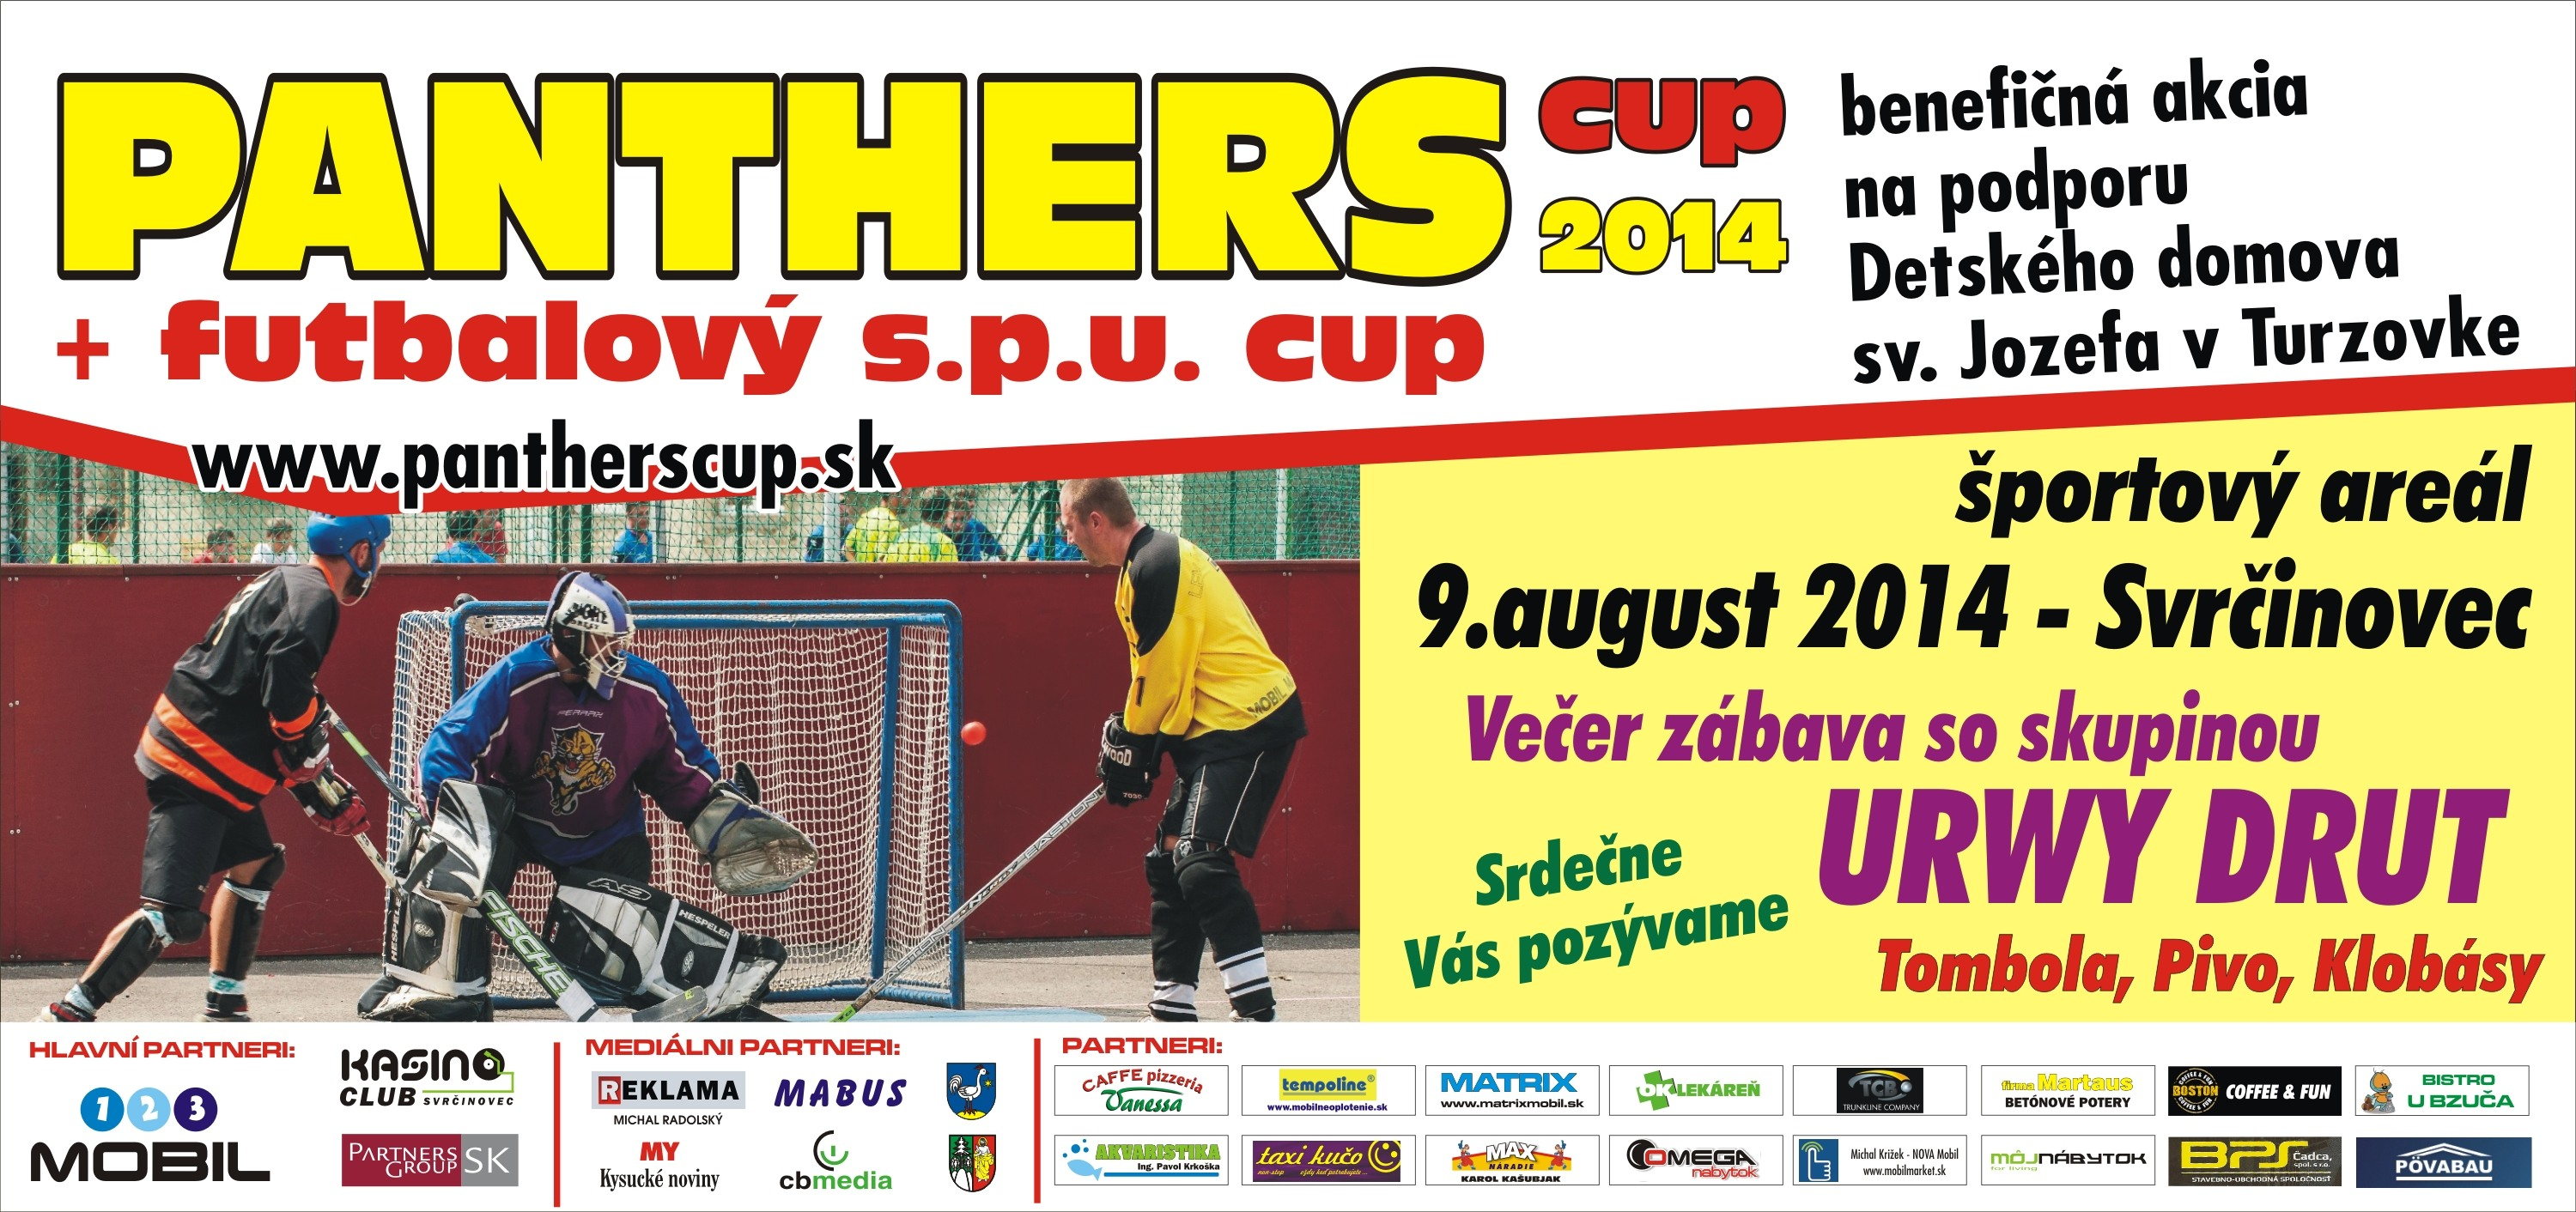 plagat_panthers_cup_2014bilboard